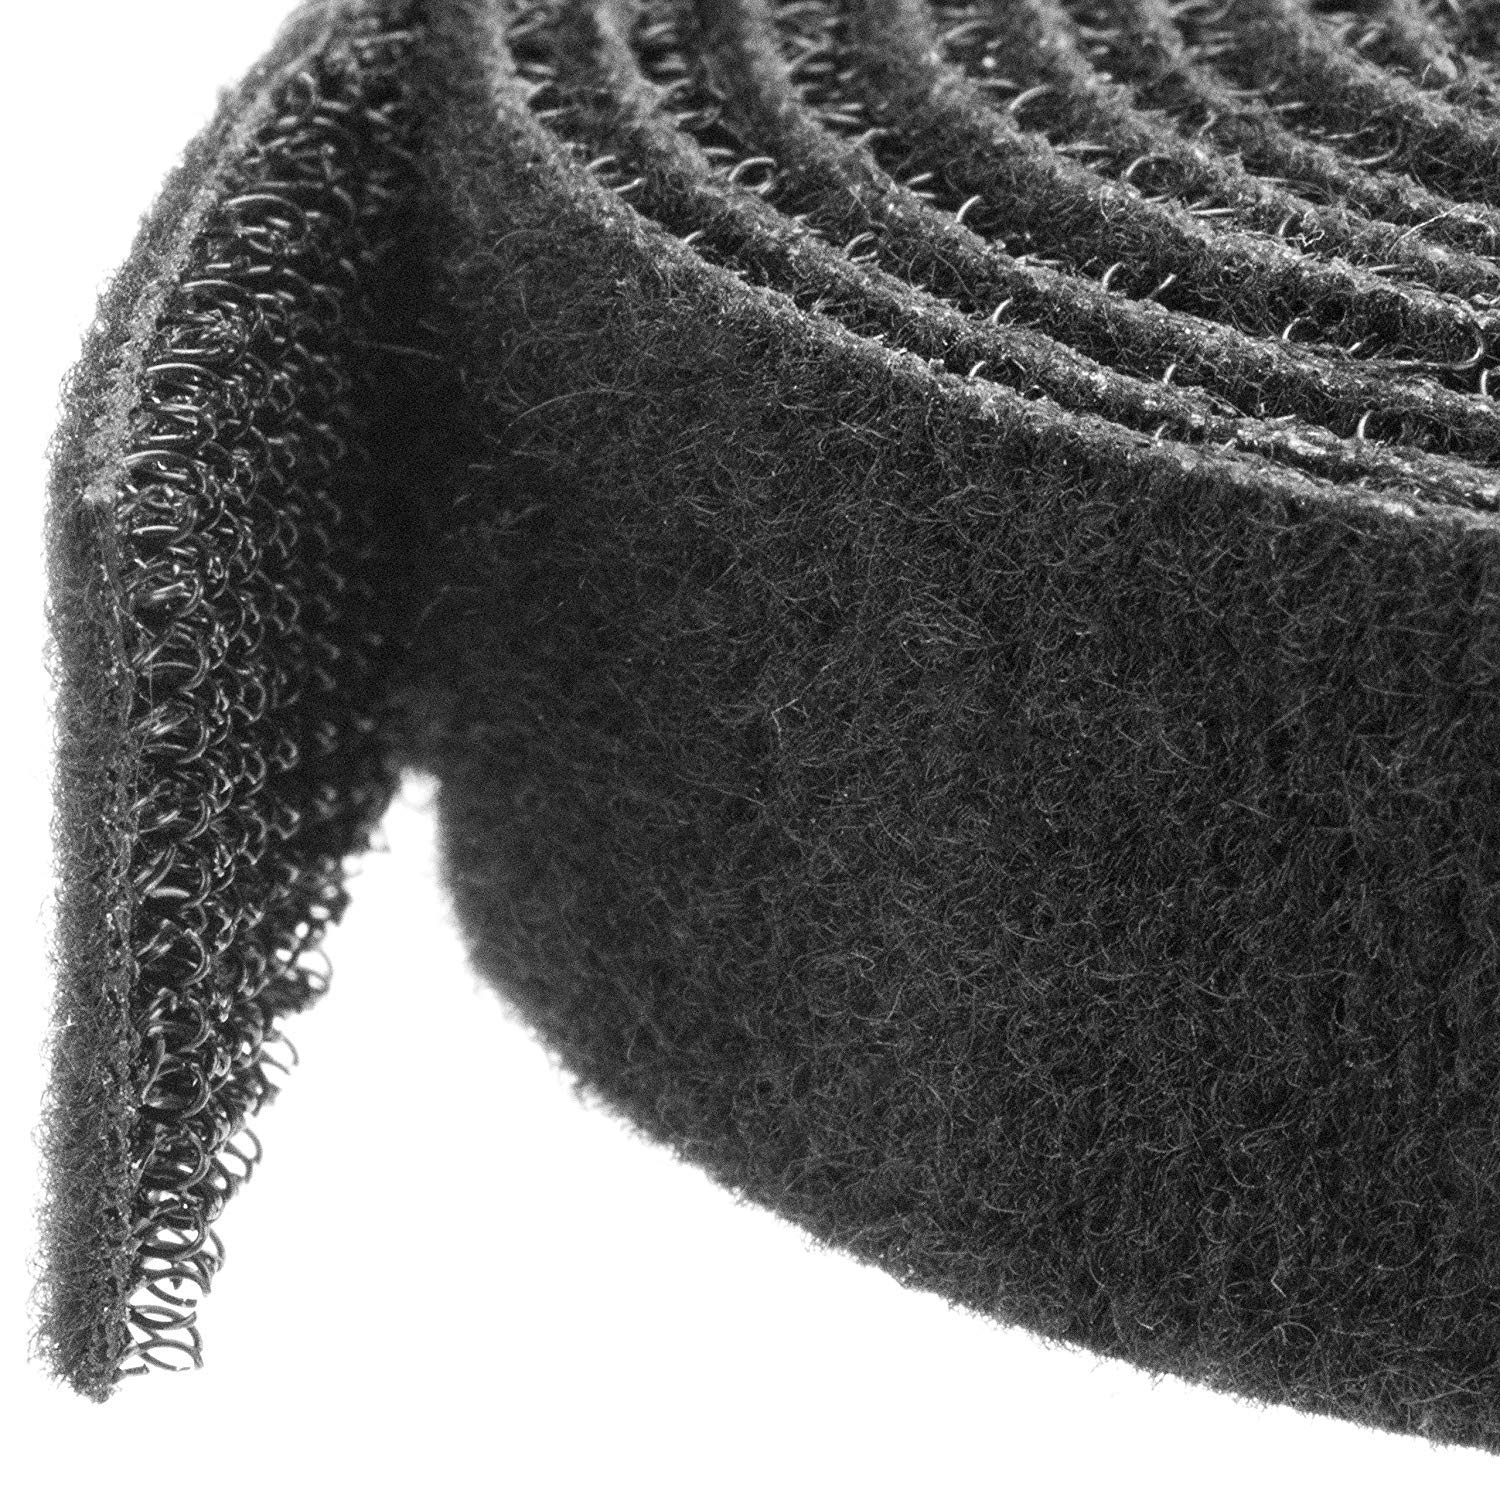 StarTech.com Hook-and-Loop Cable Management Tie - 100 ft. Bulk Roll - Black - Cut-to-Size Cable Wrap / Straps